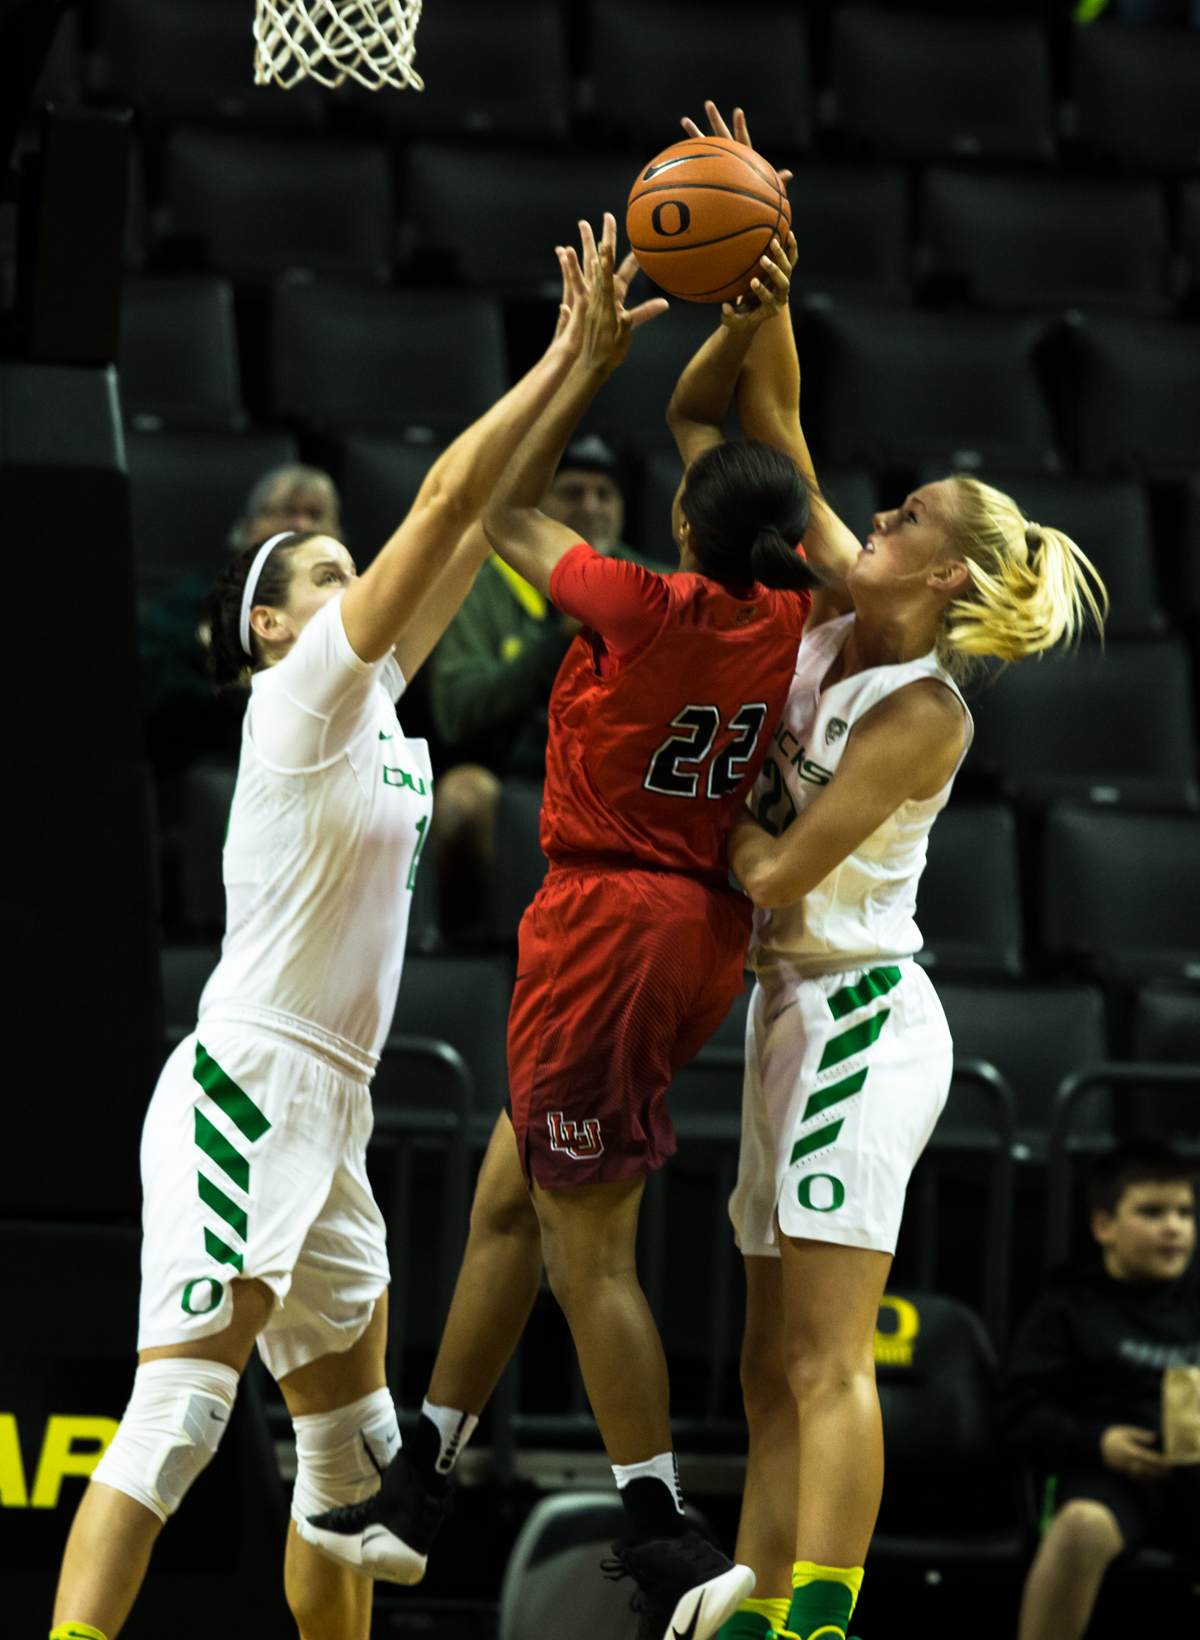 Lamar Cardinal's guard DeA'ngela Mathis (#22) attemps a lay up while Ducks forwards Jacina Vandenberg (#15) and Lauren Yearwood (#22) attempt to block.  The Oregon Ducks women's basketball team won their season opener against the Lamar Cardinals 84-67.  Photo by Austin Hicks, Oregon News Lab